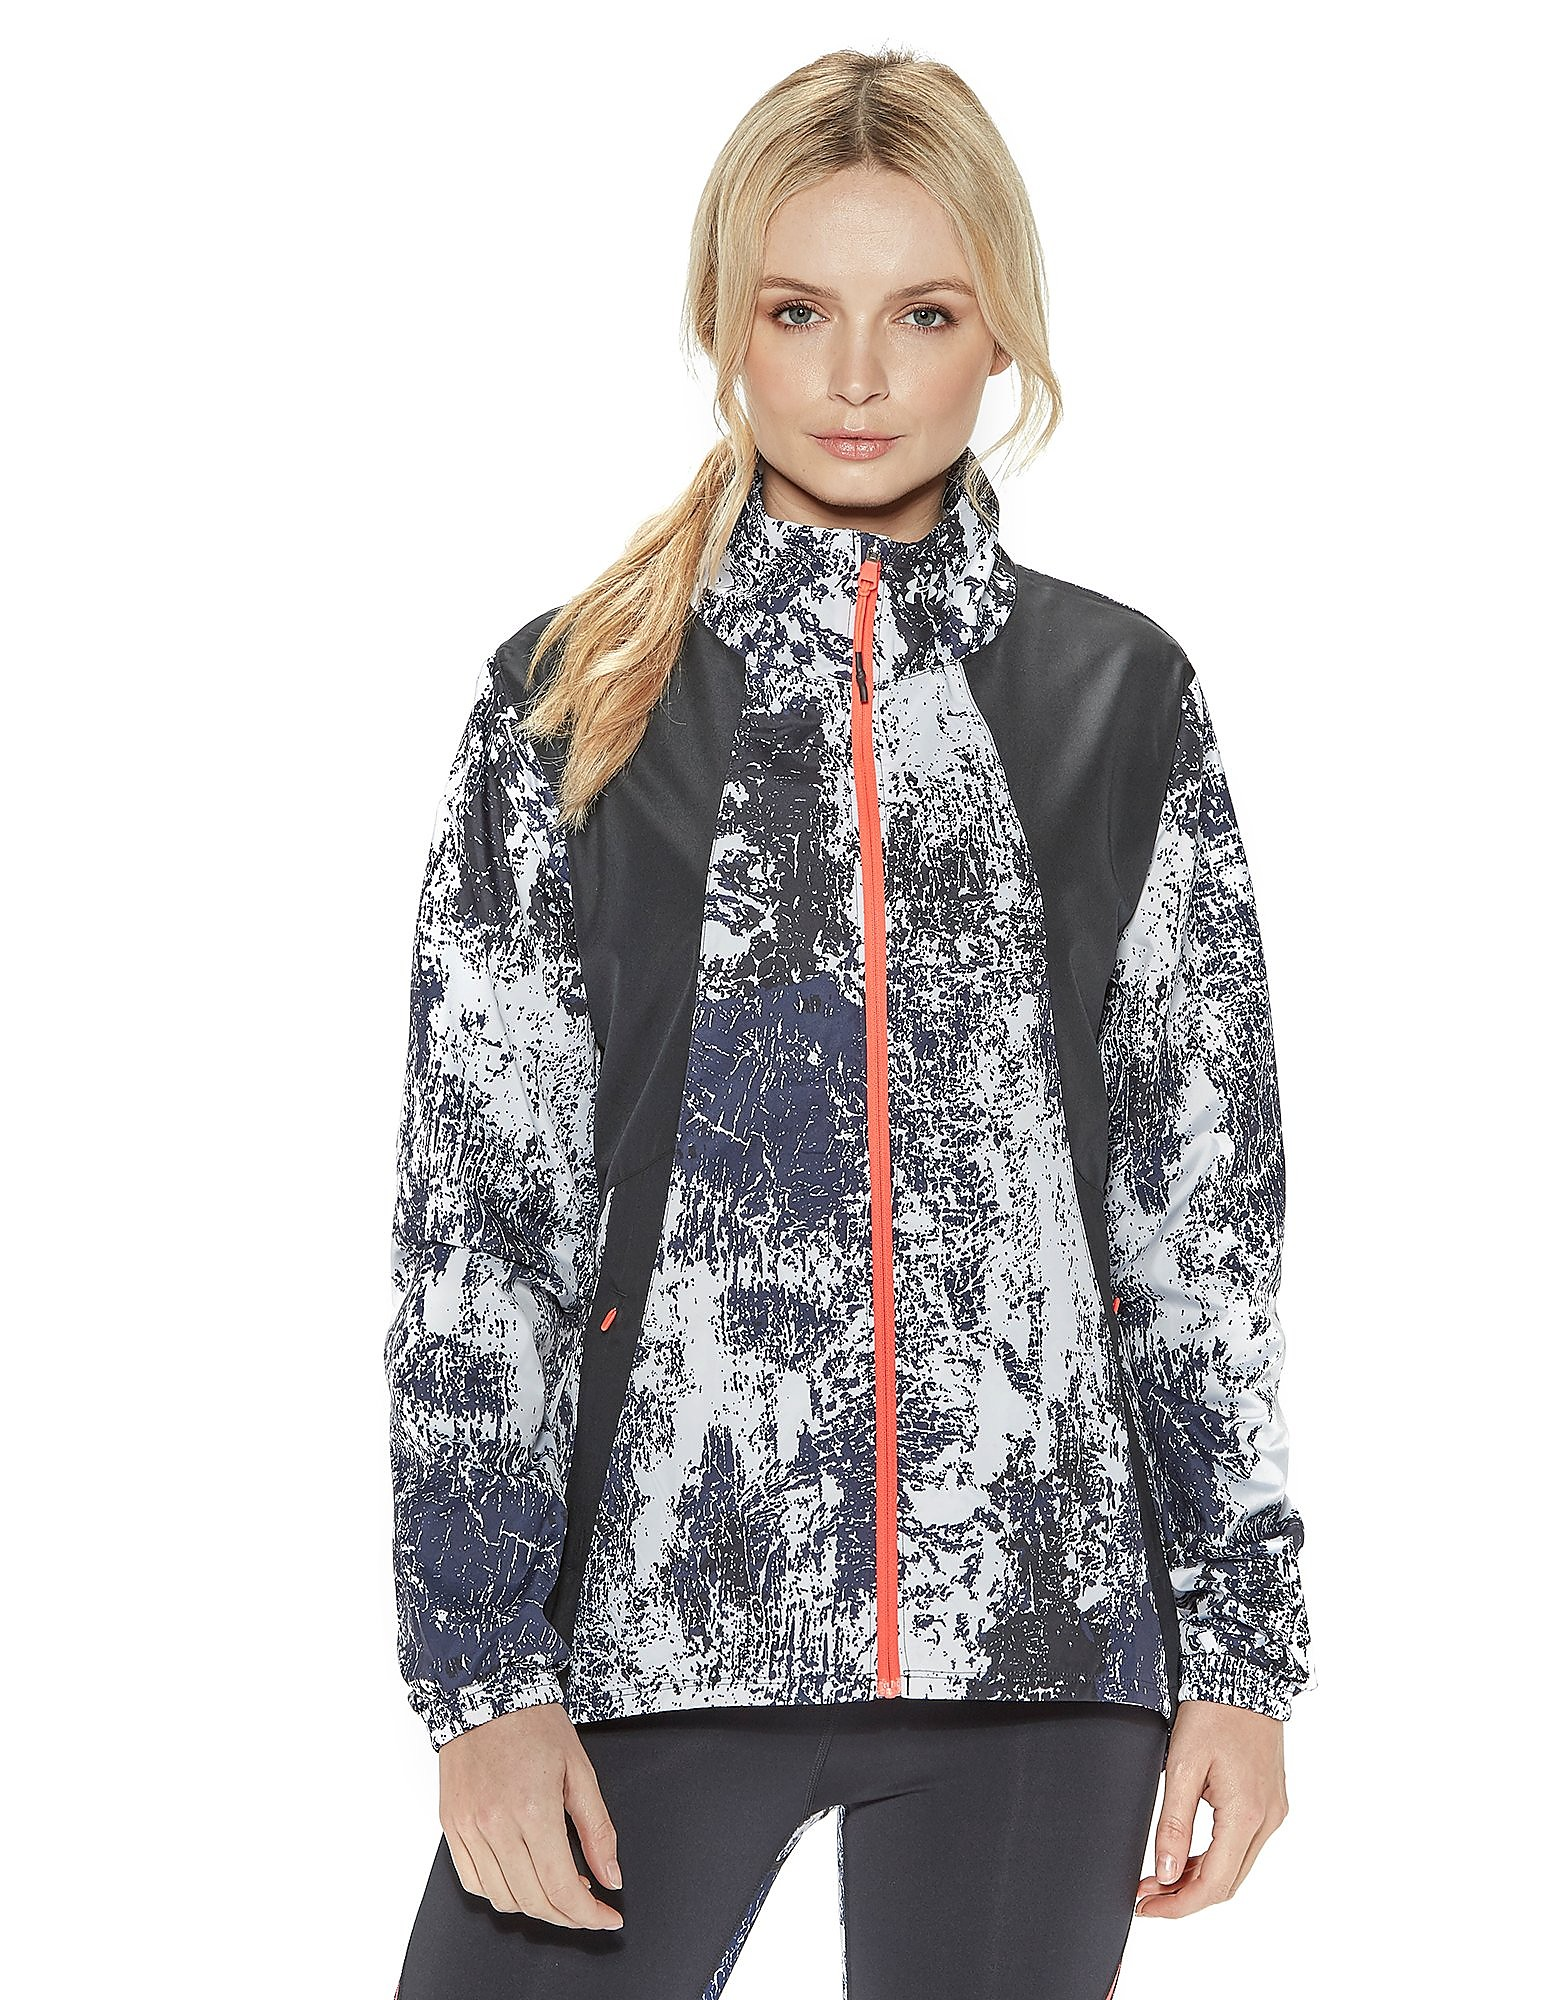 Under Armour Winter Run Jacket